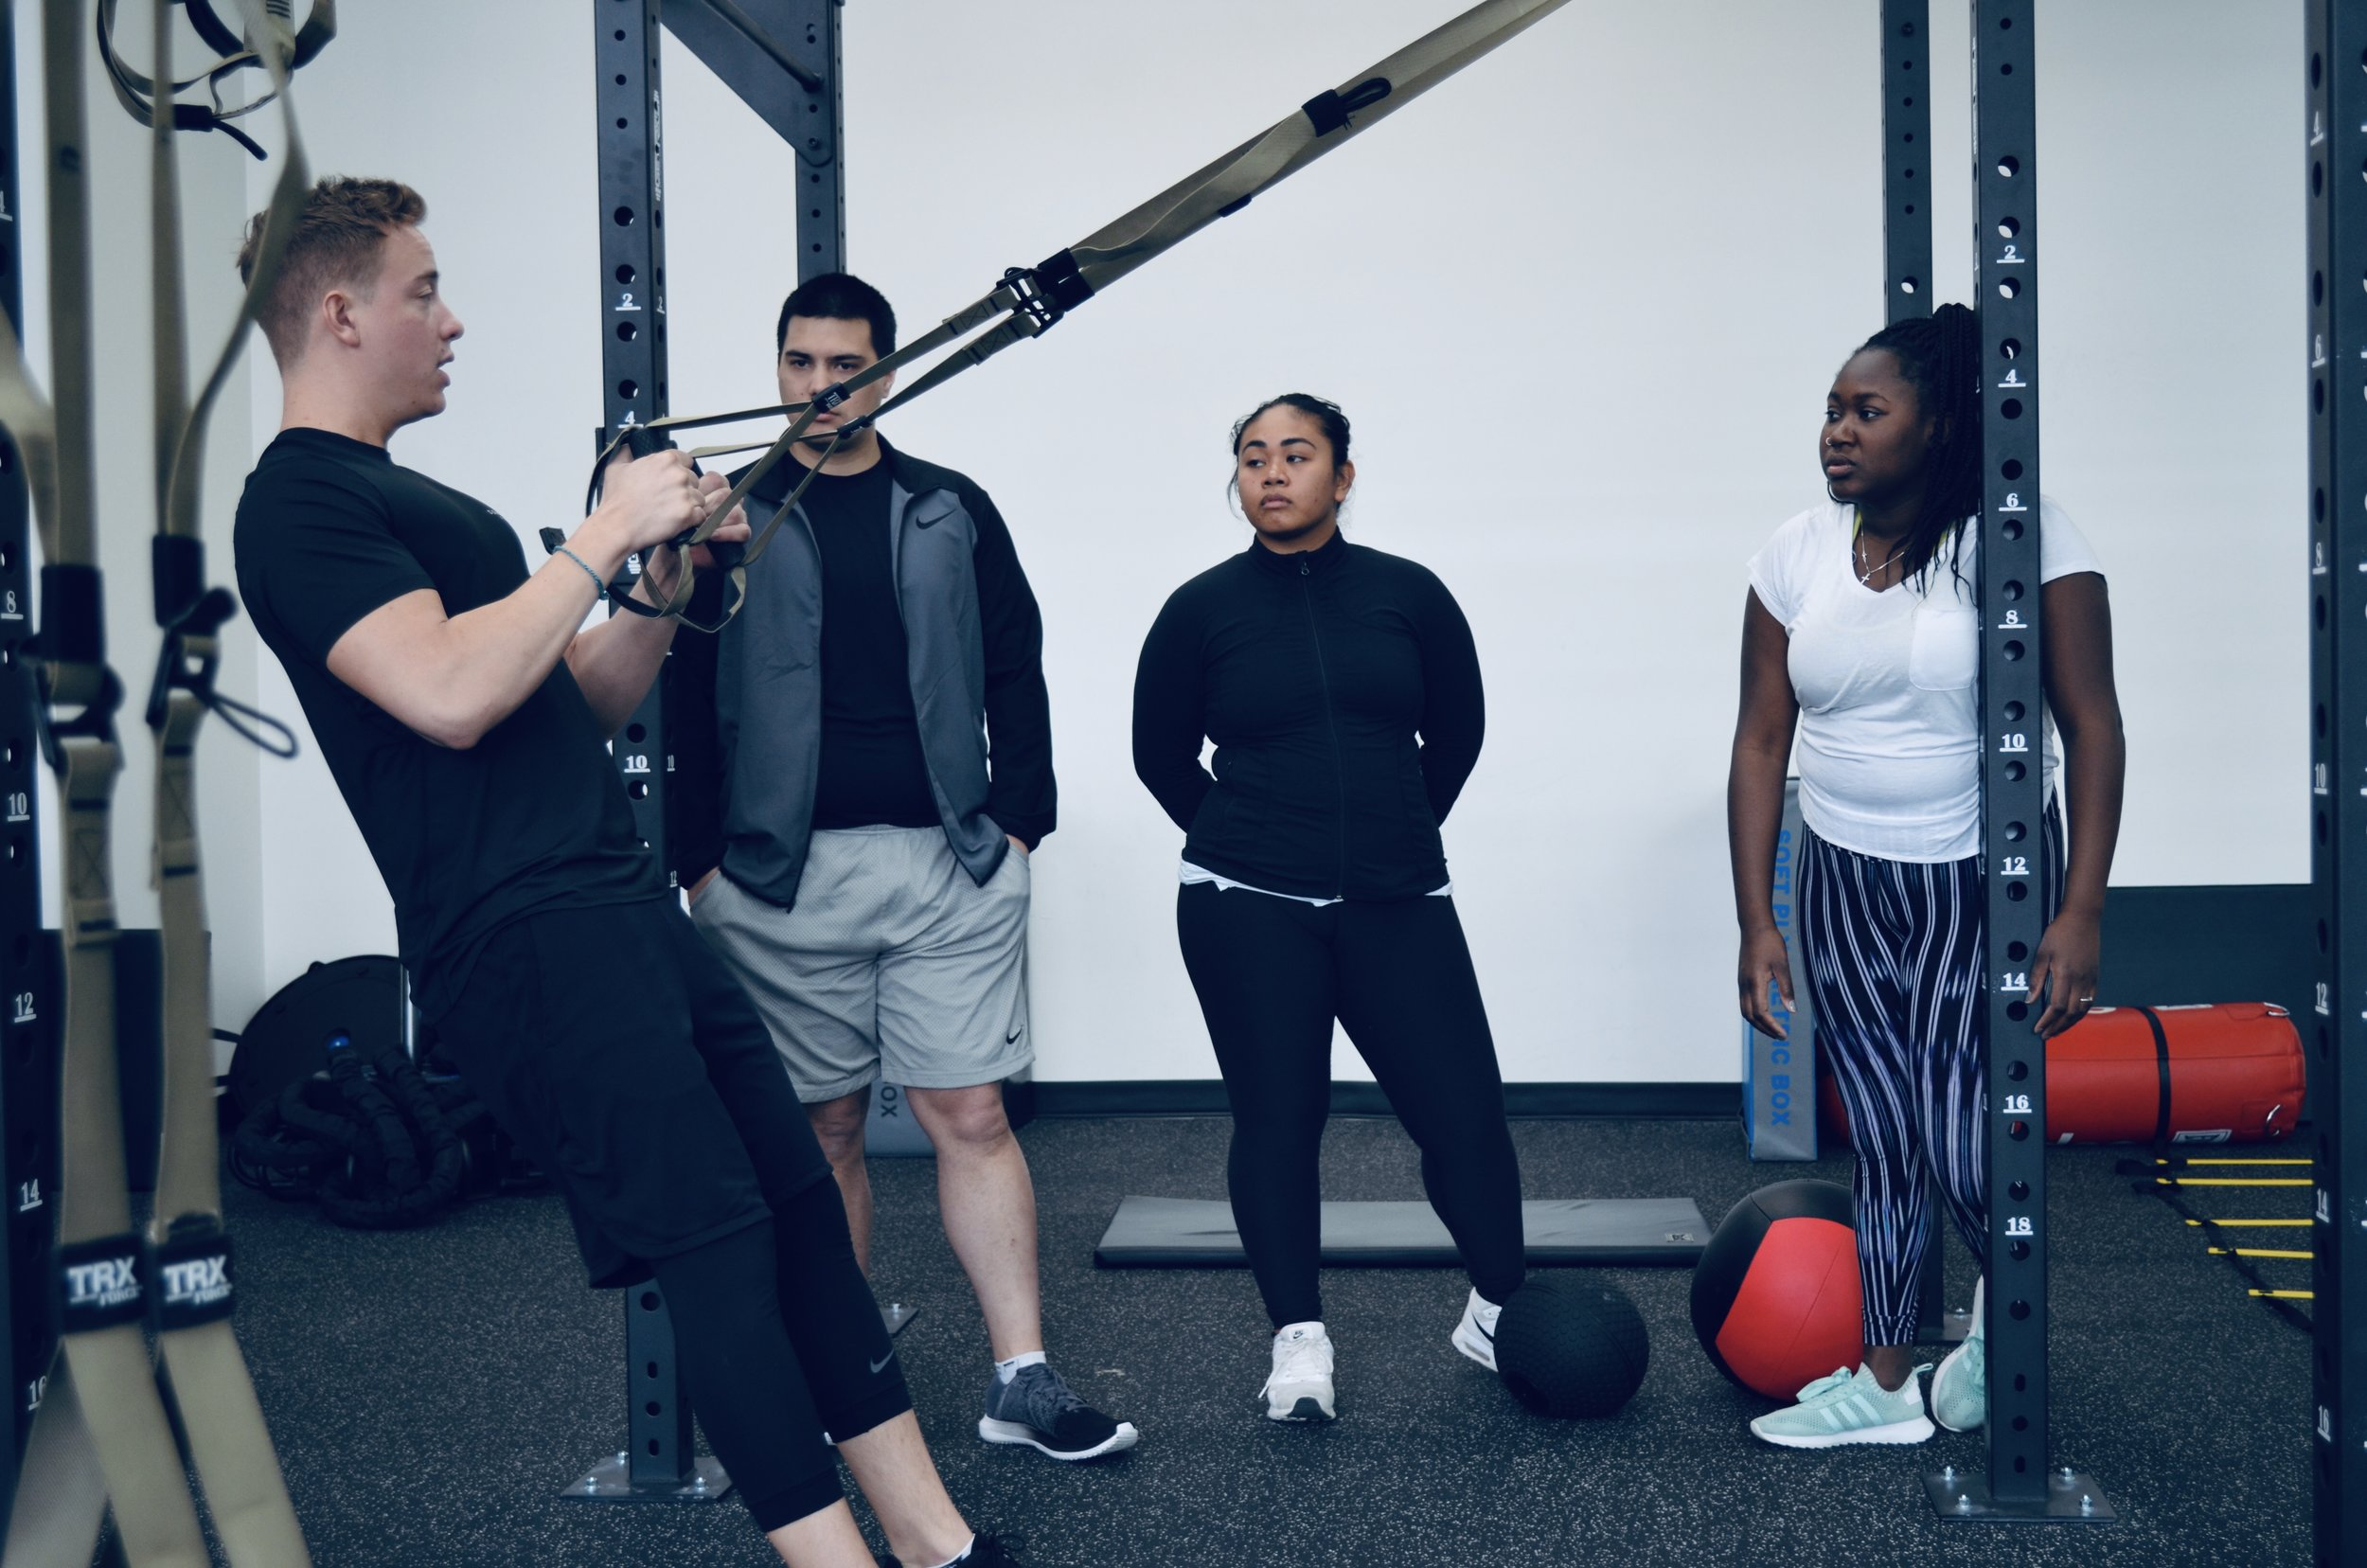 - IF YOU ARE A PERSONAL TRAINER LOOKING TO GROW YOUR BUSINESS IN VANCOUVER, COMBAT CLUB MAY BE THE RIGHT SETTING FOR YOU. OUR PURPOSE IS TO PROVIDE YOU THE SPACE AND FREEDOM TO SUCCESSFULLY MANAGE YOUR CLIENTS AND MORE IMPORTANTLY YOUR OWN BUSINESS.